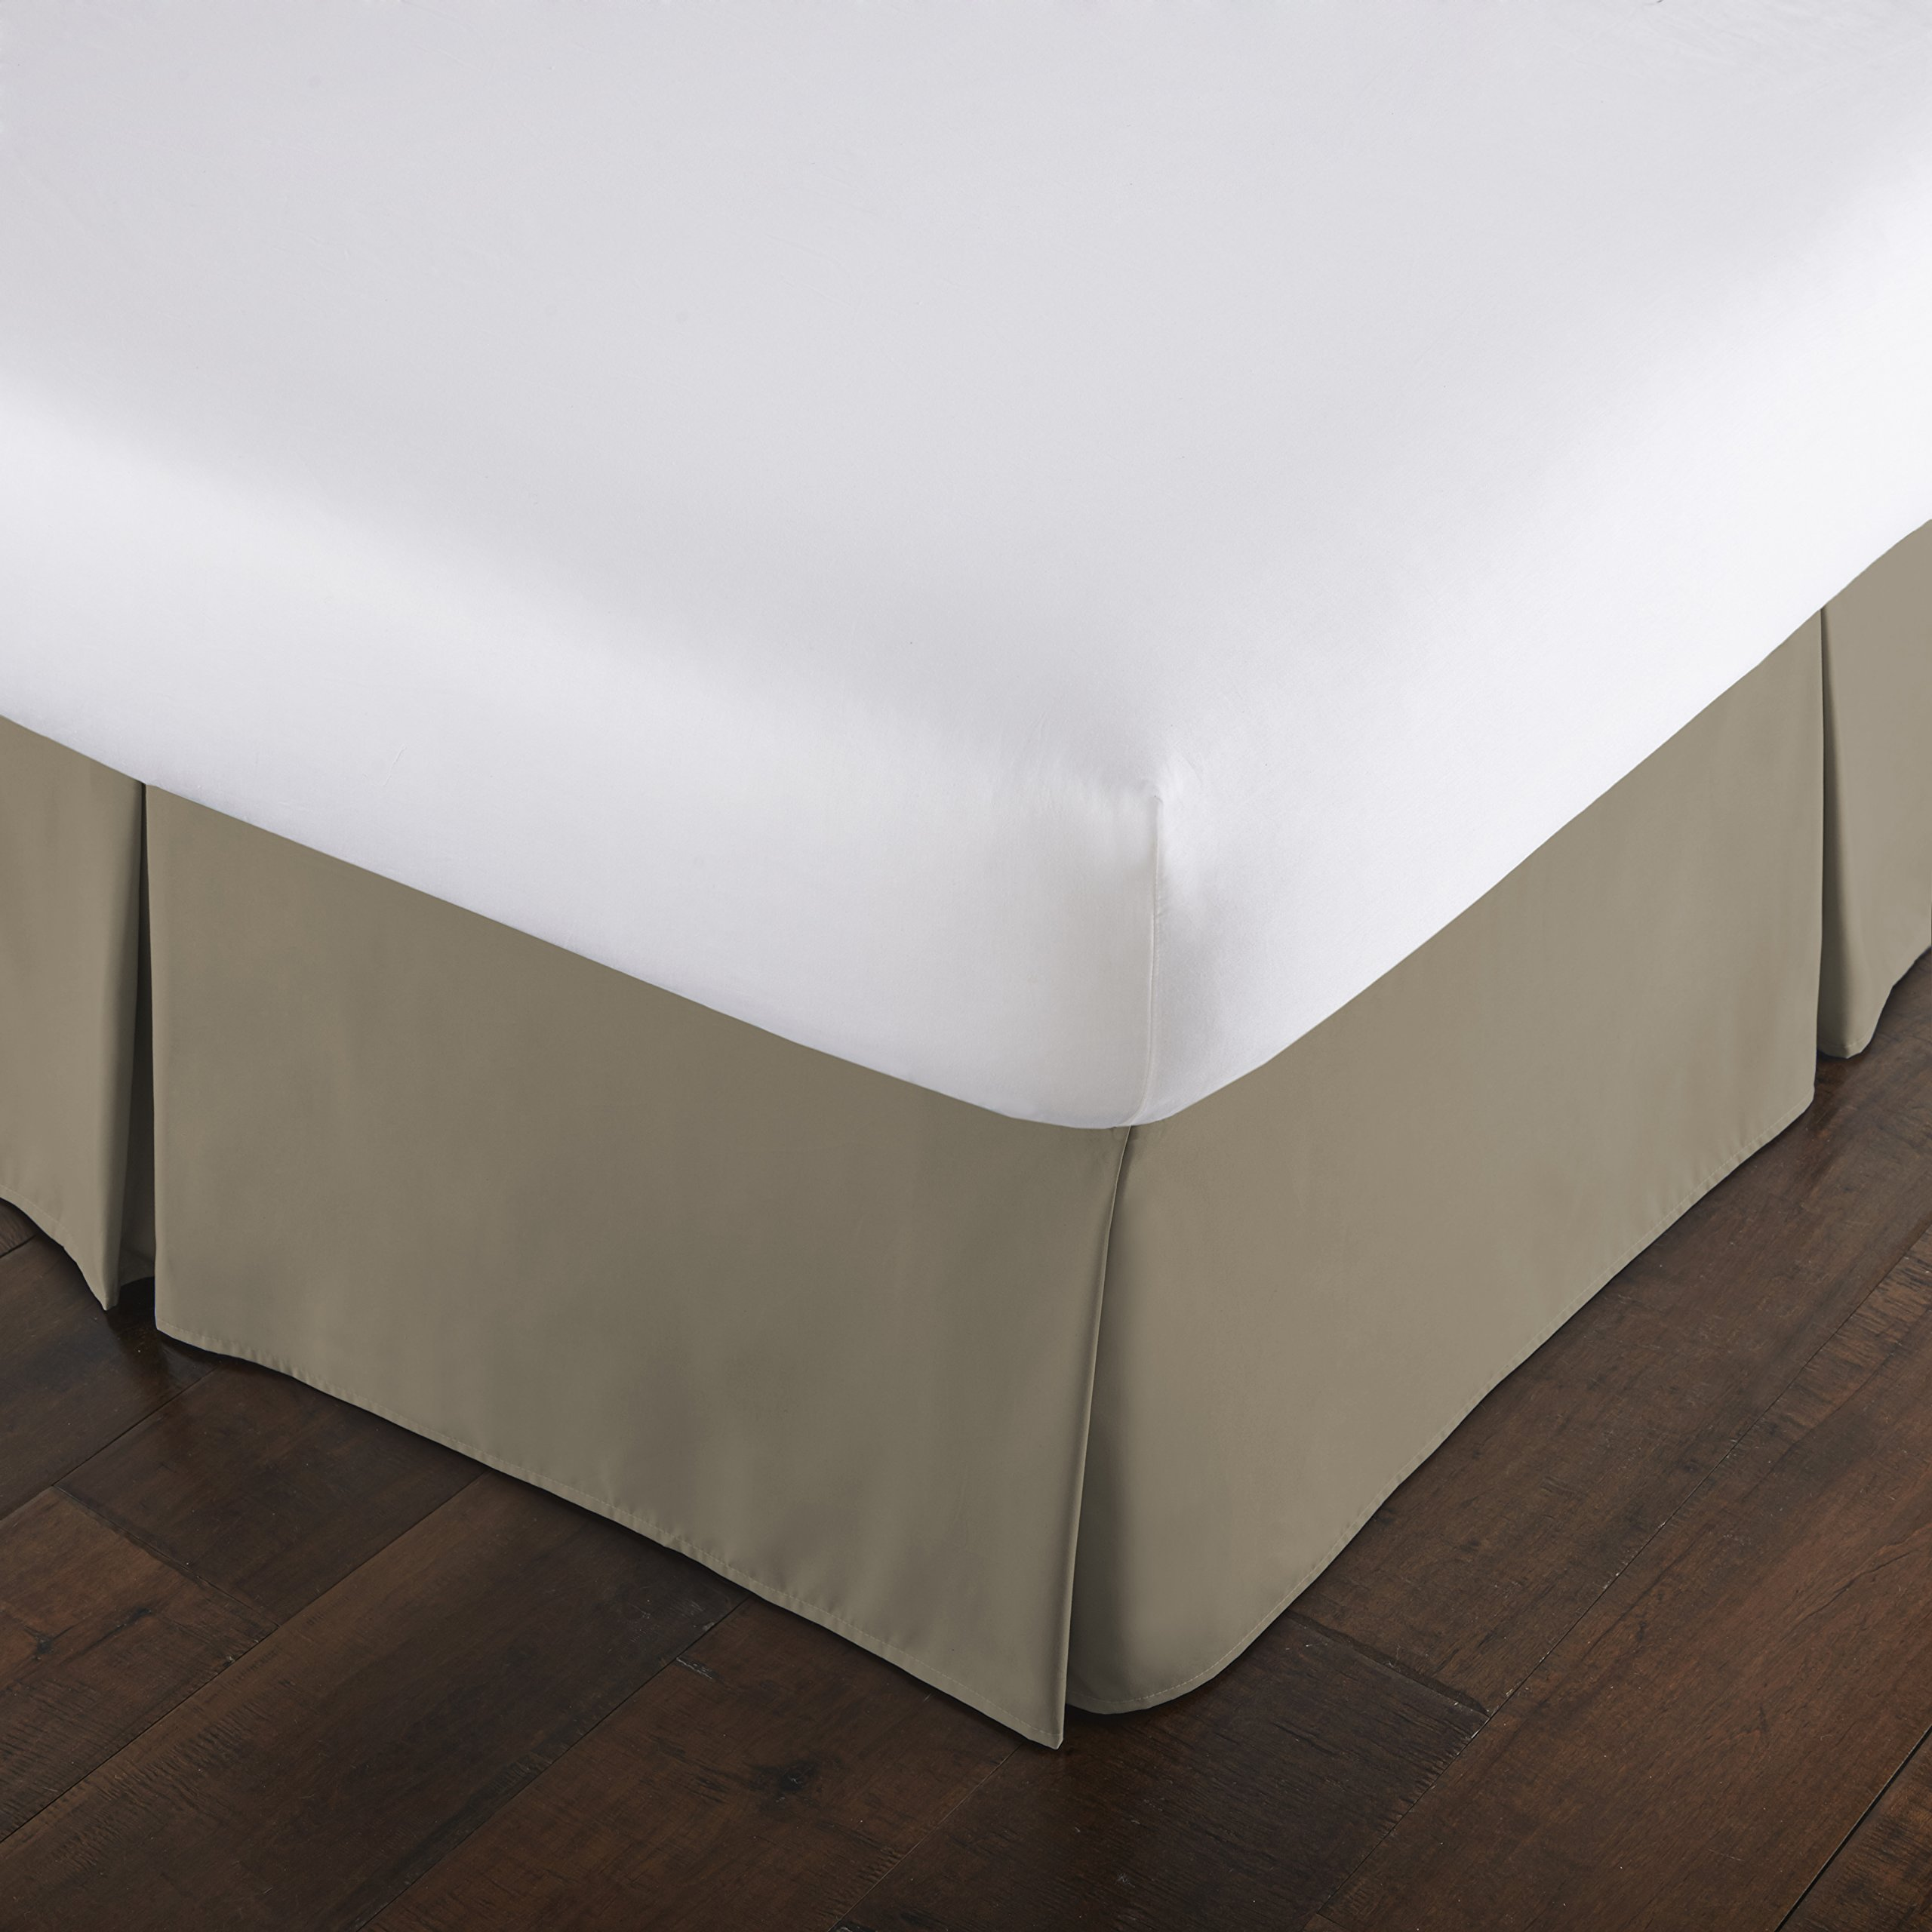 Southshore Fine Linens - VILANO Springs - 15 inch Drop Pleated Bed Skirt, Taupe, Twin